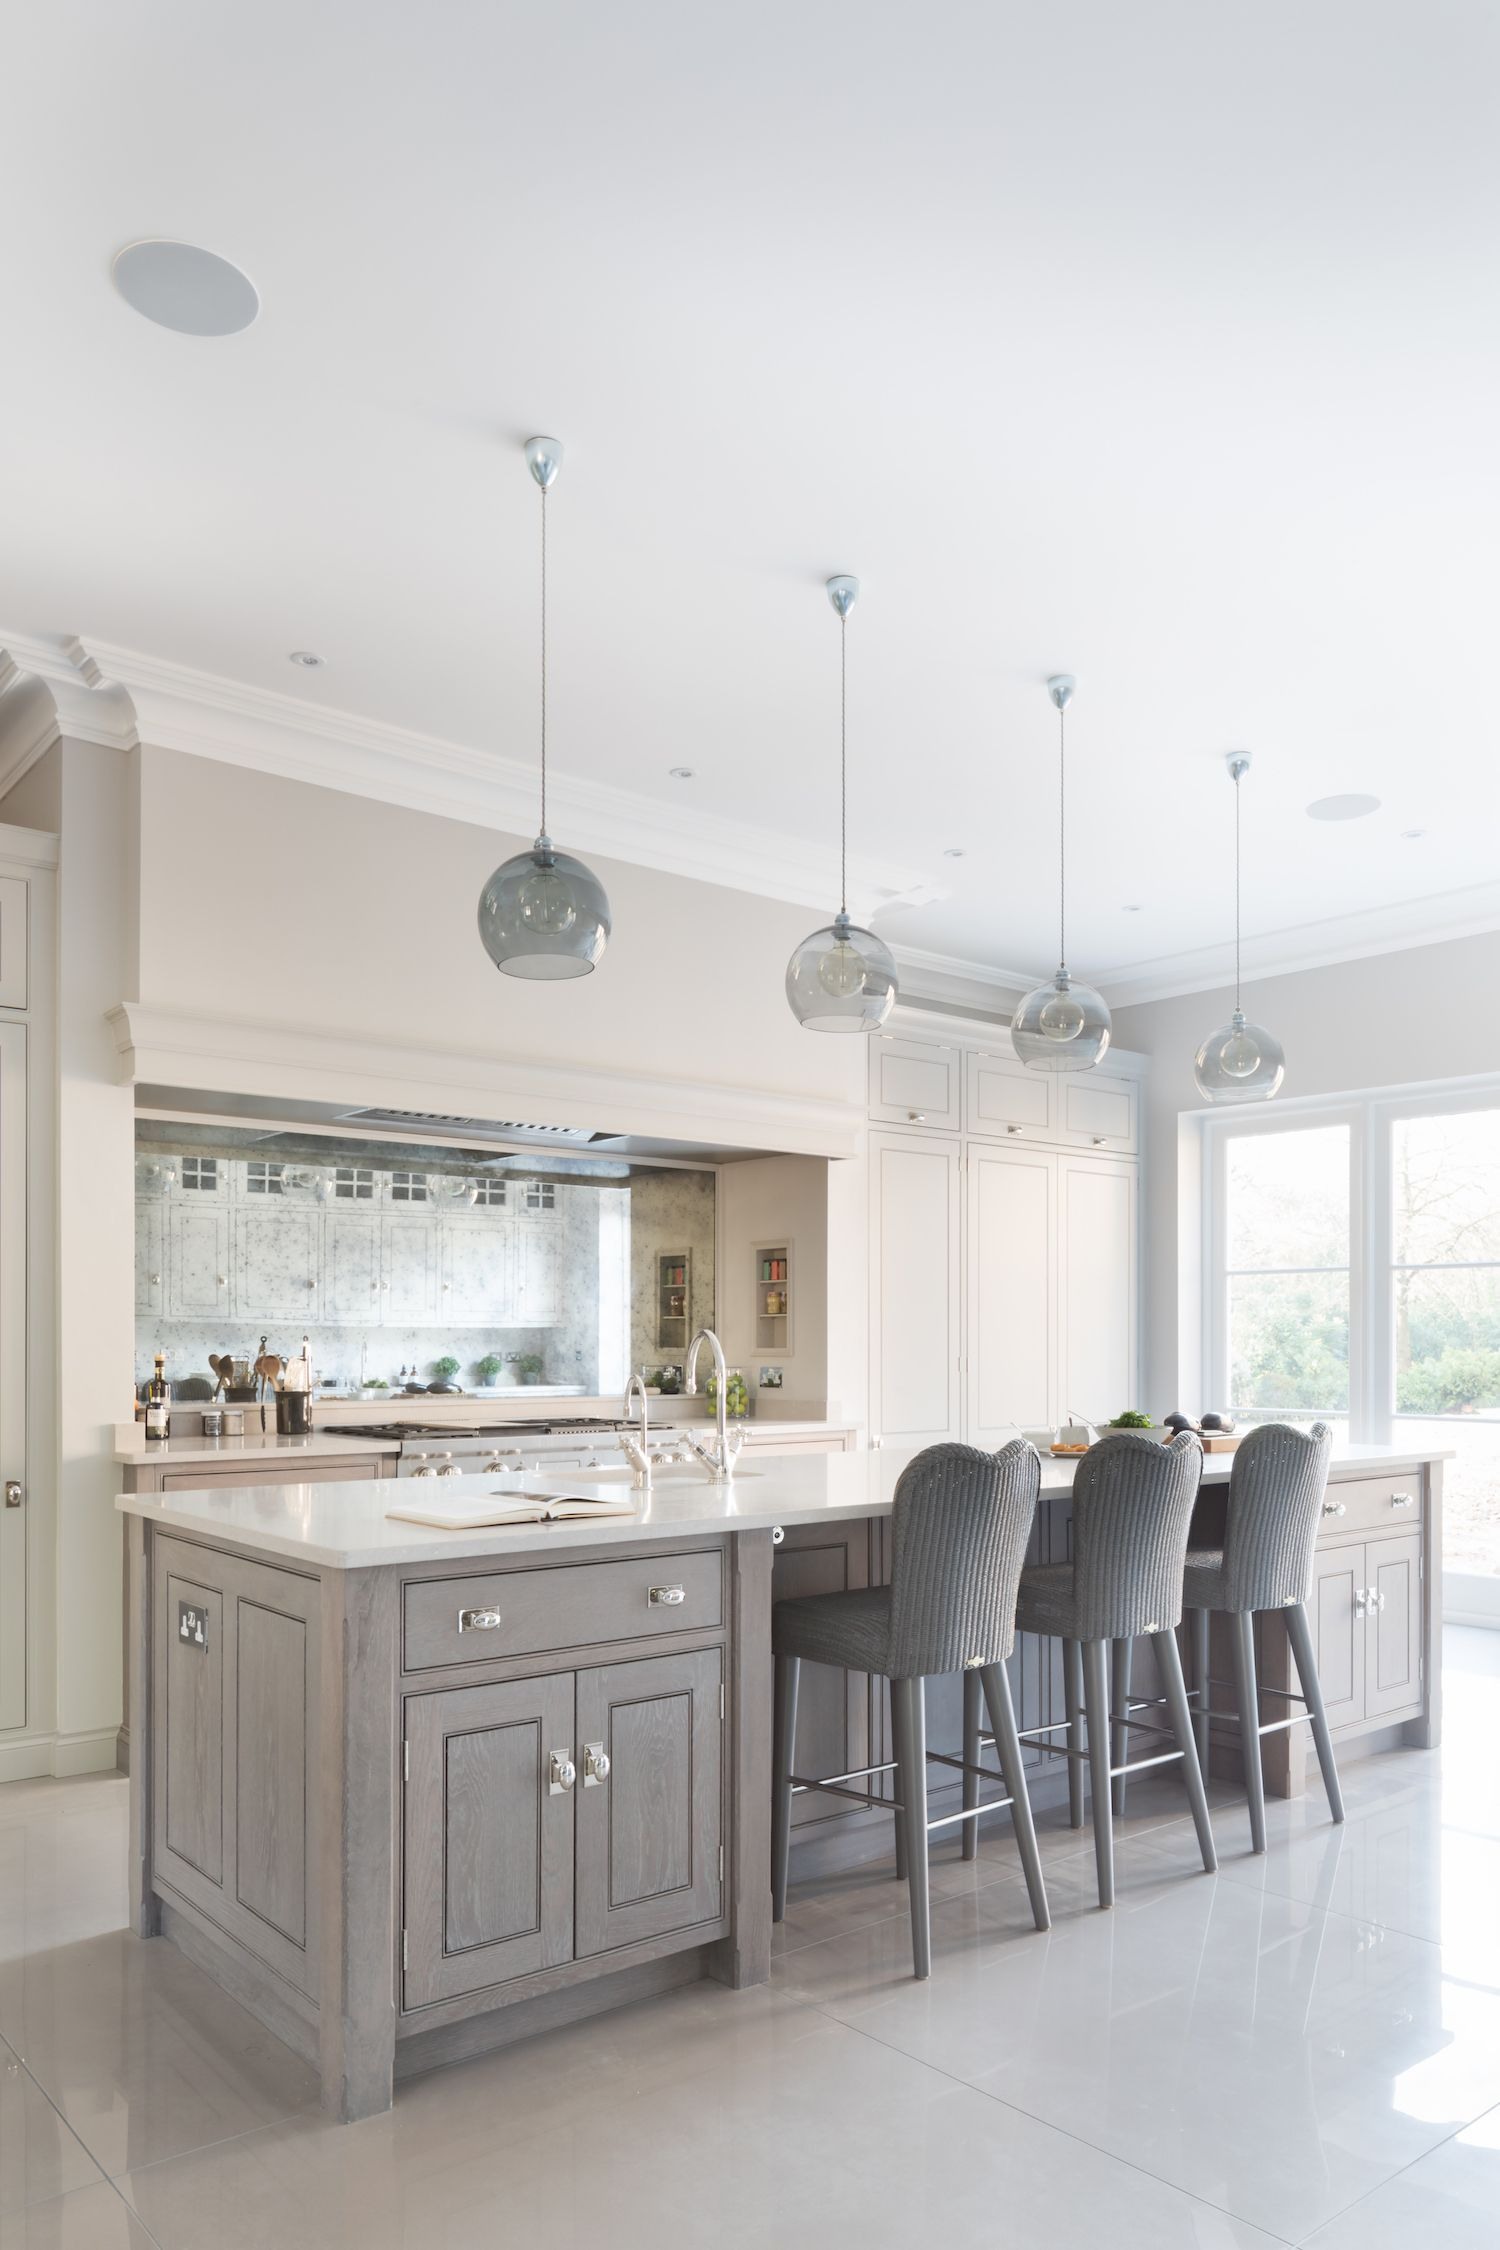 Kitchen Island Ideas Customize A Kitchen Island To Suit Your Personal Style Contemporary Open Plan Kitchens Open Plan Kitchen Living Room Home Decor Kitchen